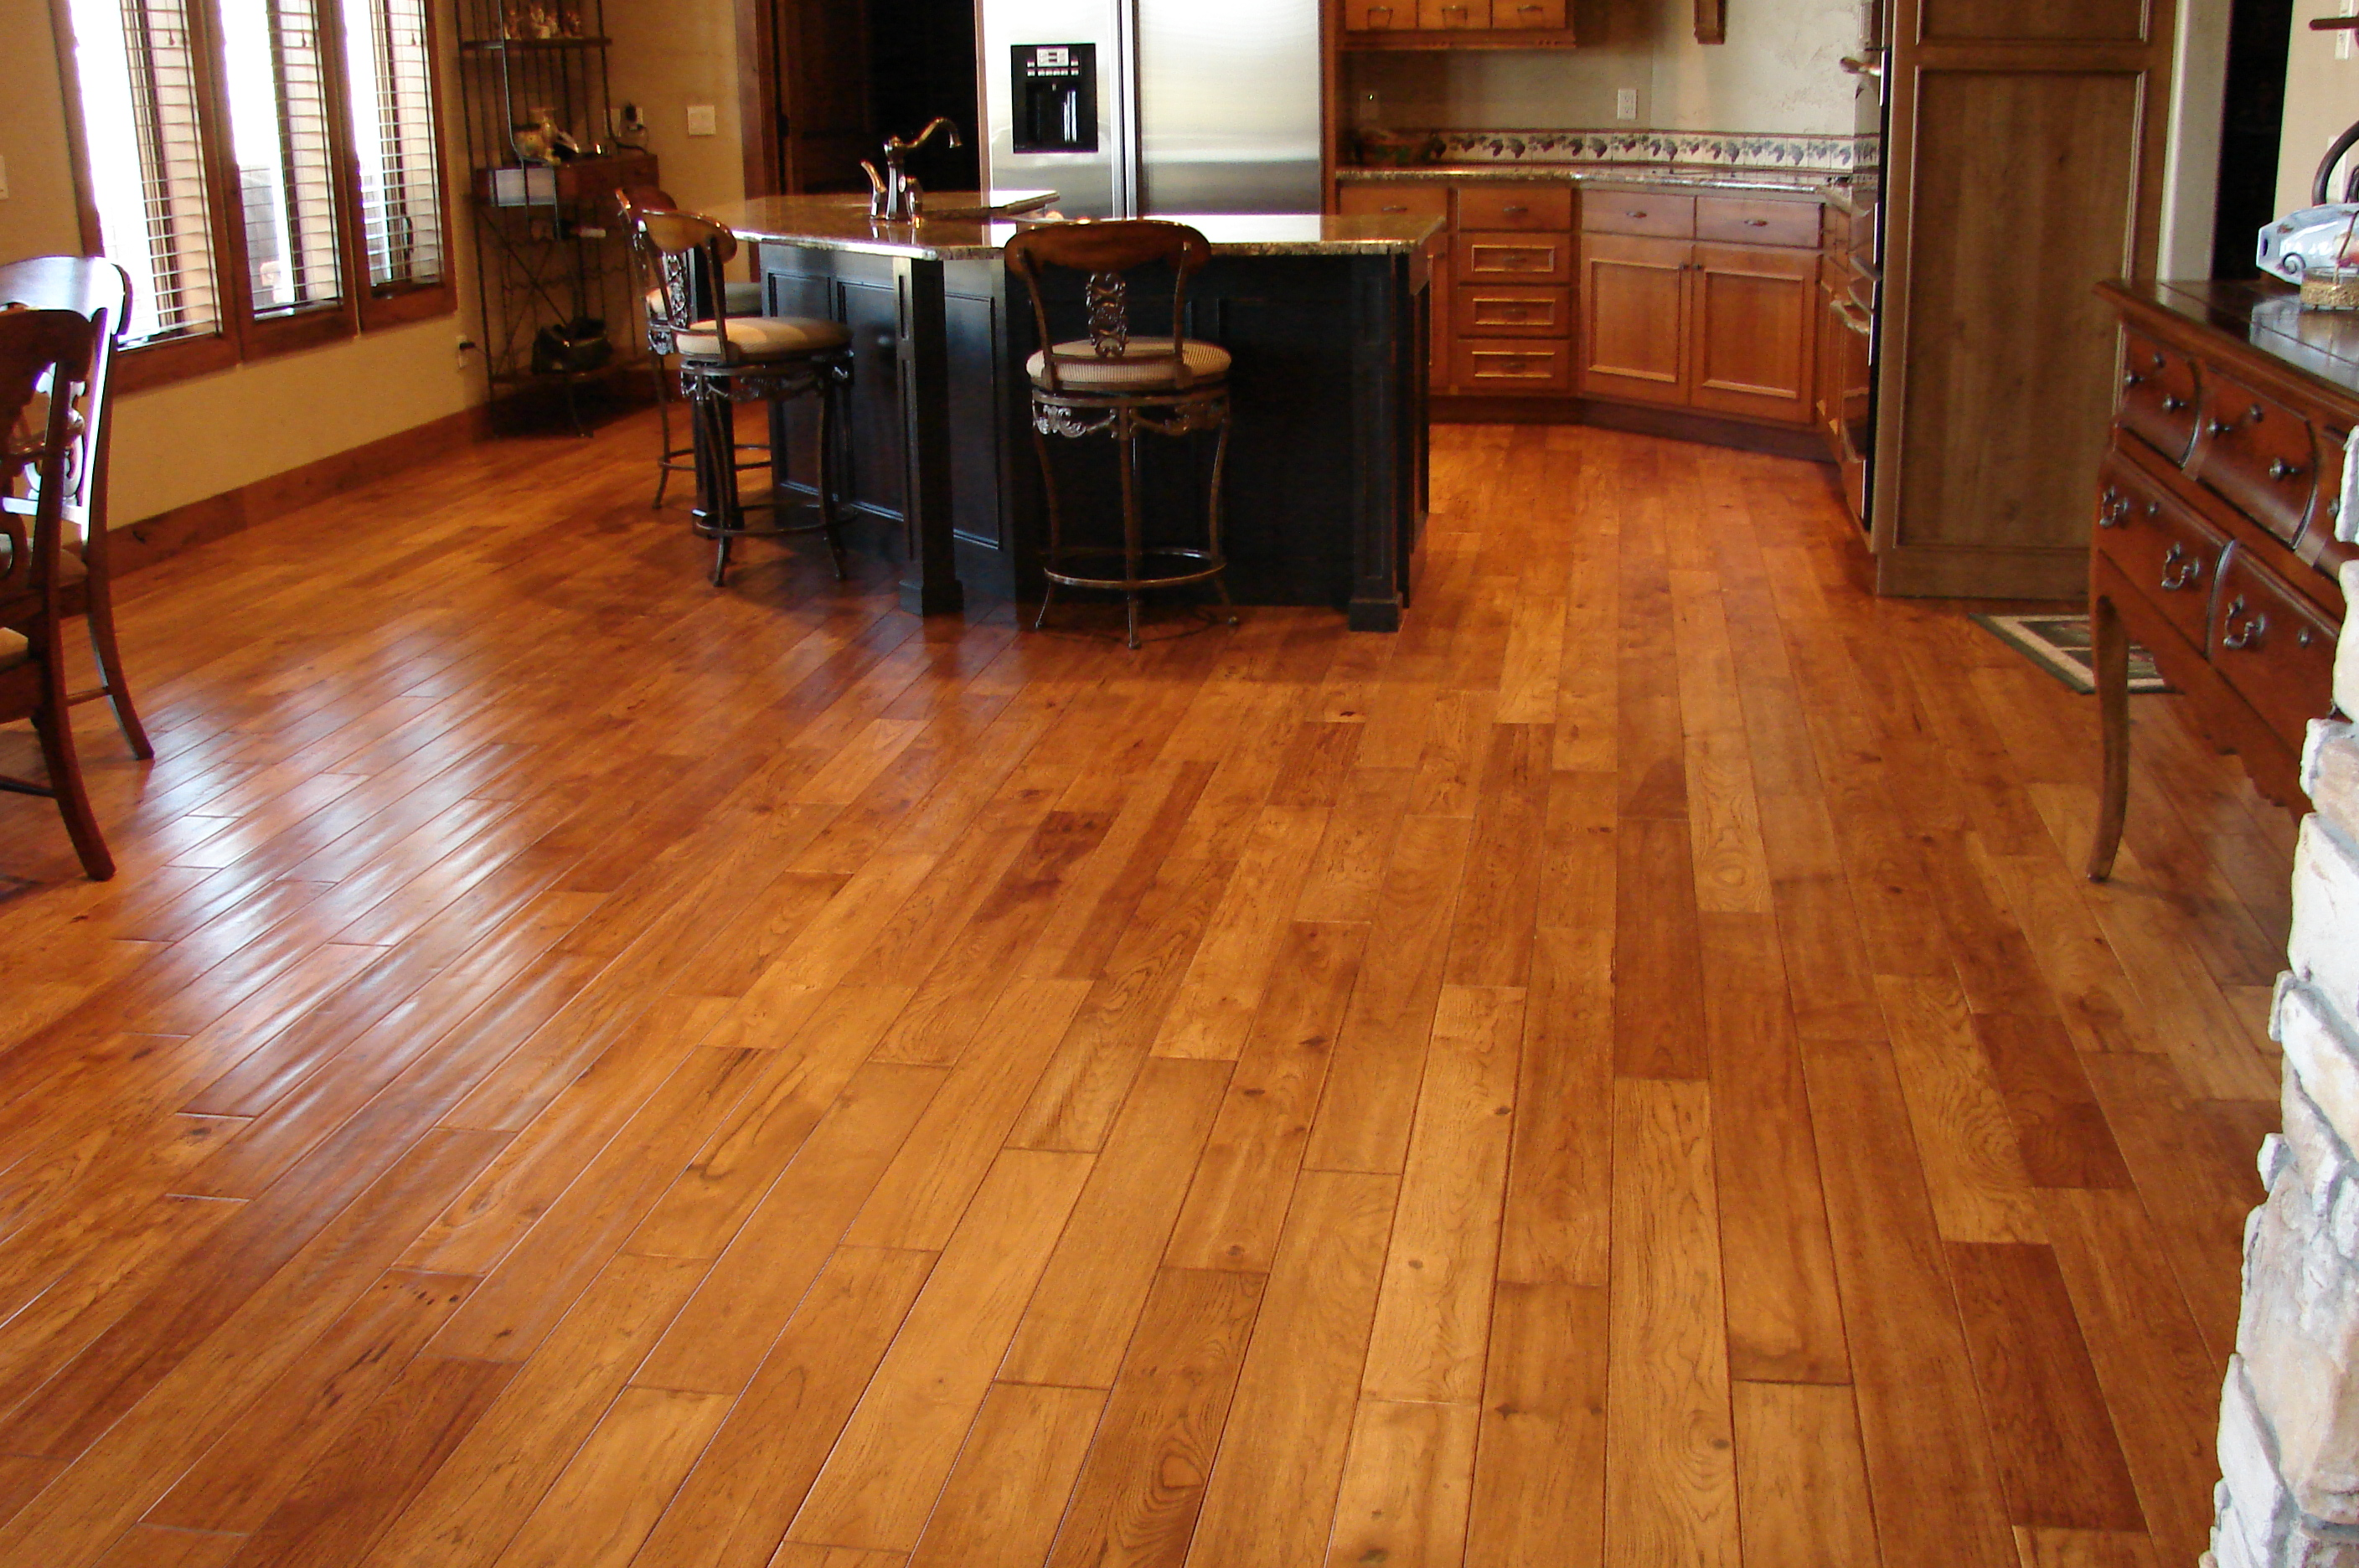 Big Kitchen Hardwood Floor